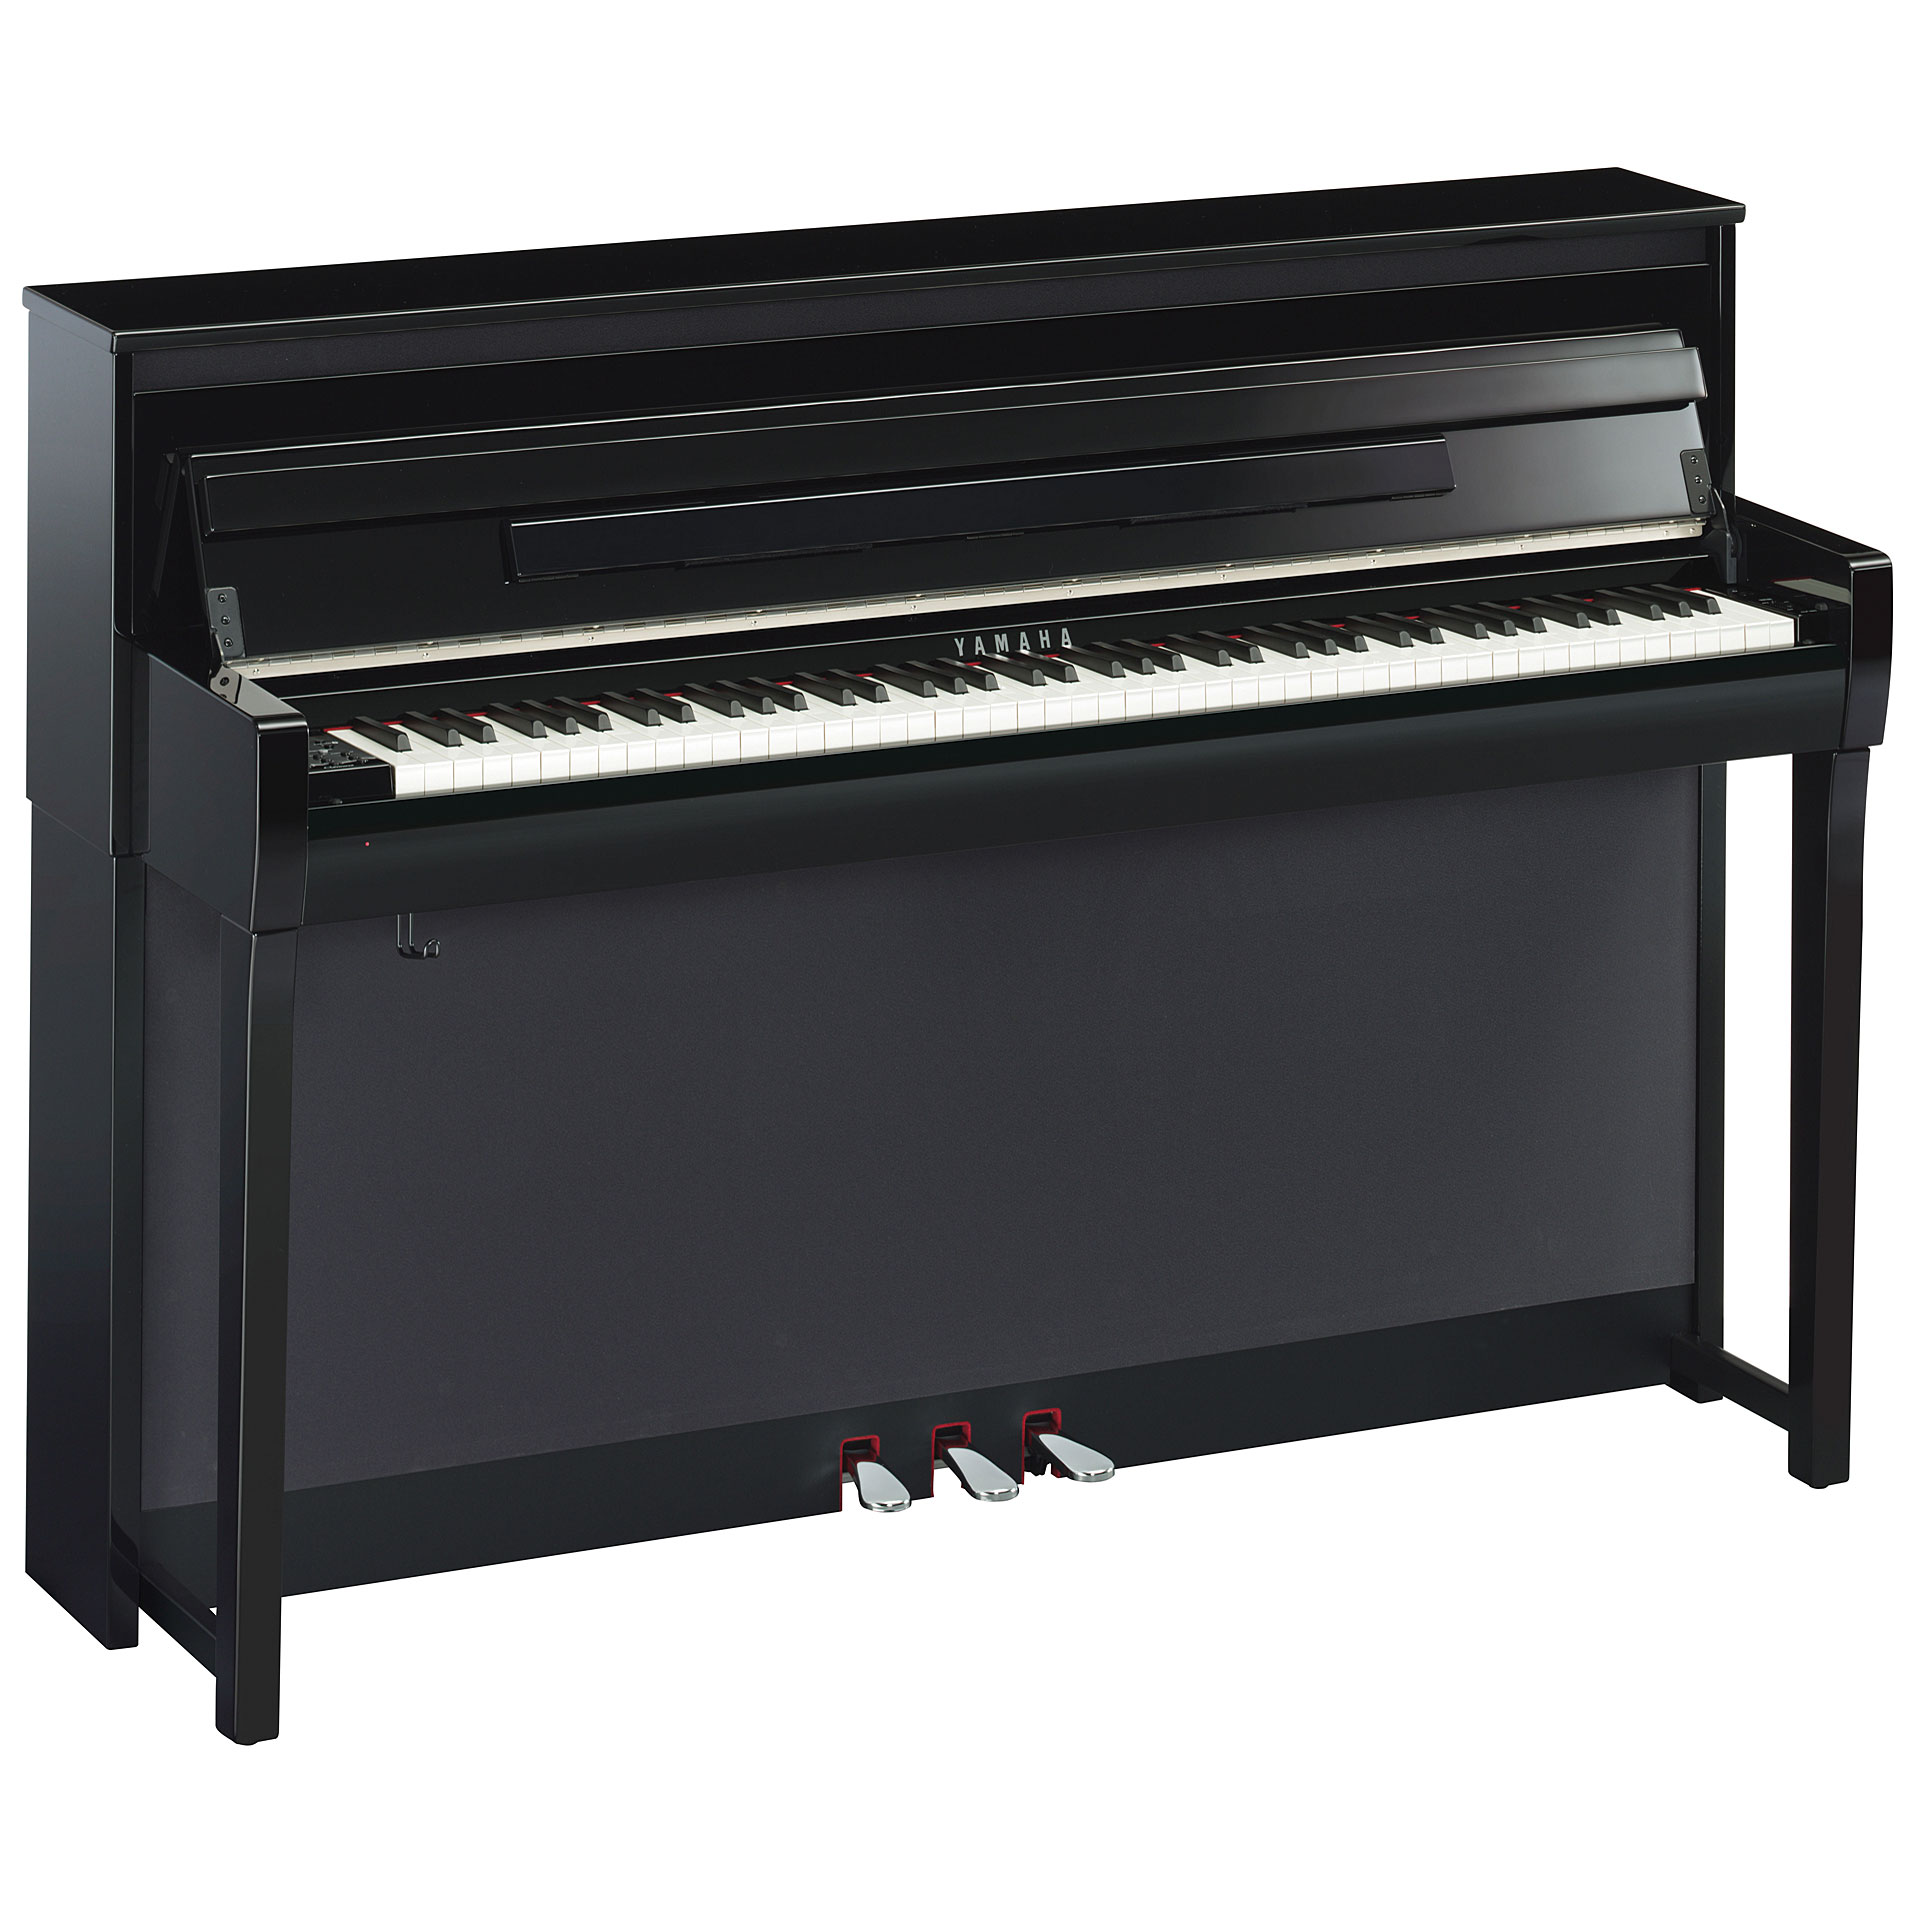 yamaha clavinova clp 685pe digital piano. Black Bedroom Furniture Sets. Home Design Ideas